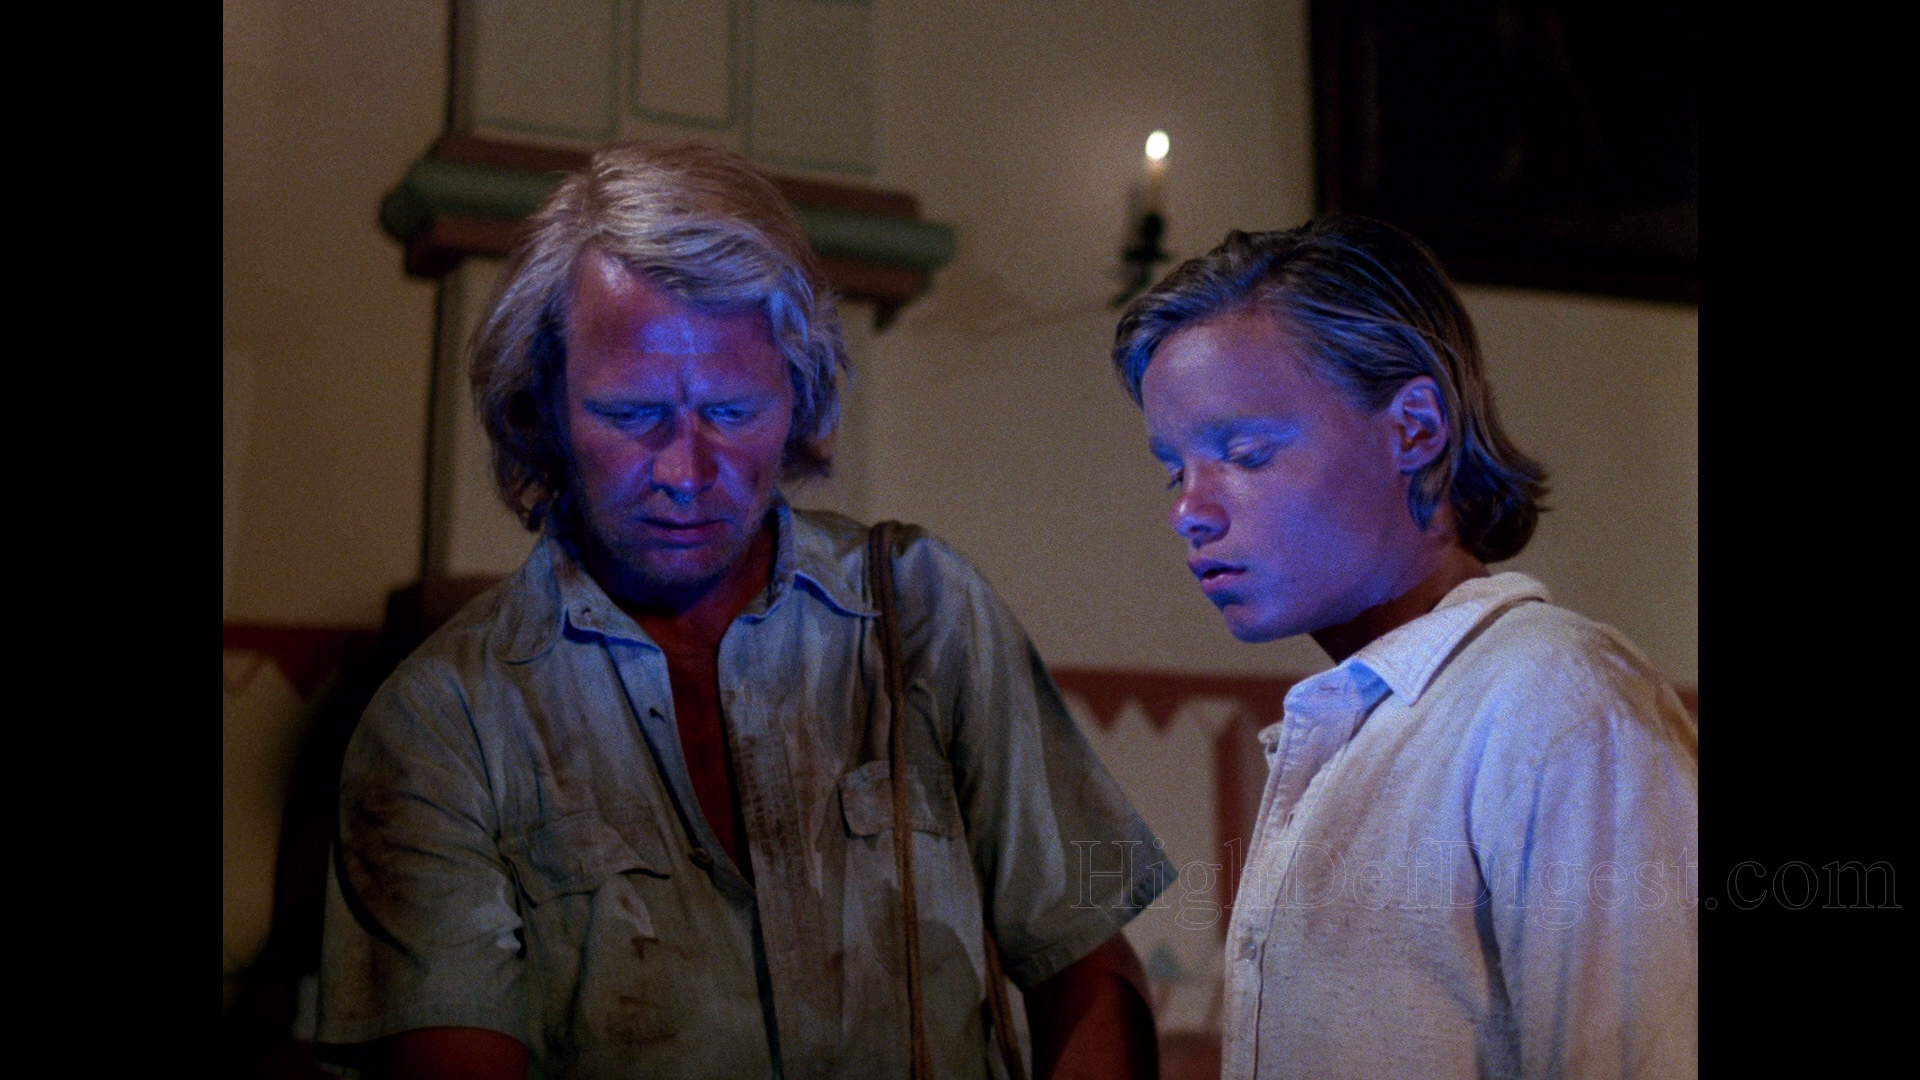 Even David Soul's Beatle Haircut couldn't scare these kids